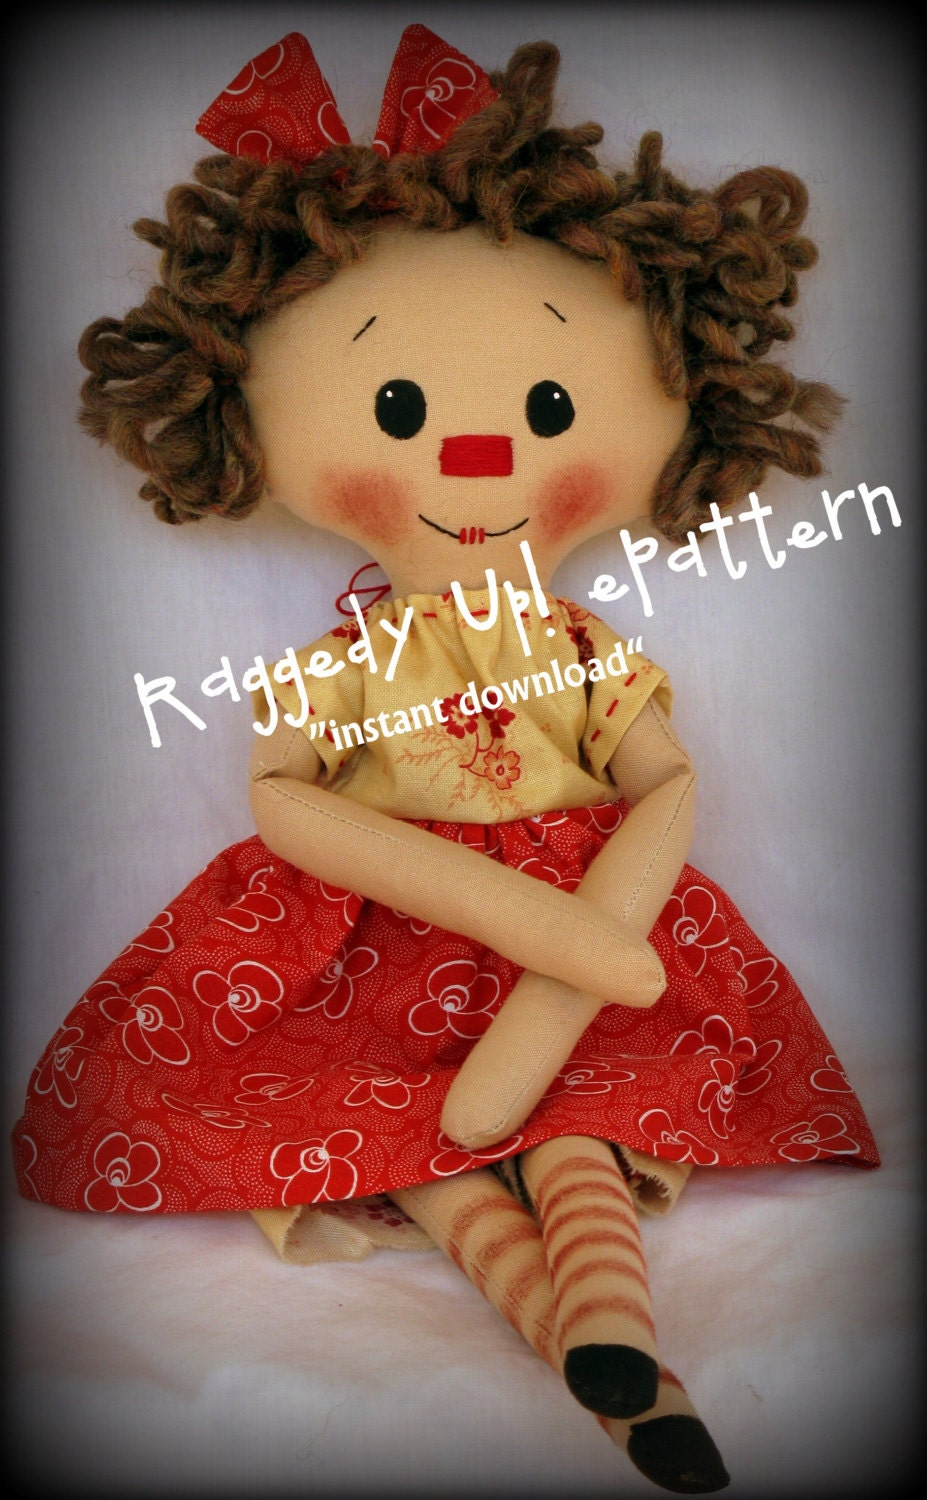 This is an image of Agile Printable Rag Doll Patterns